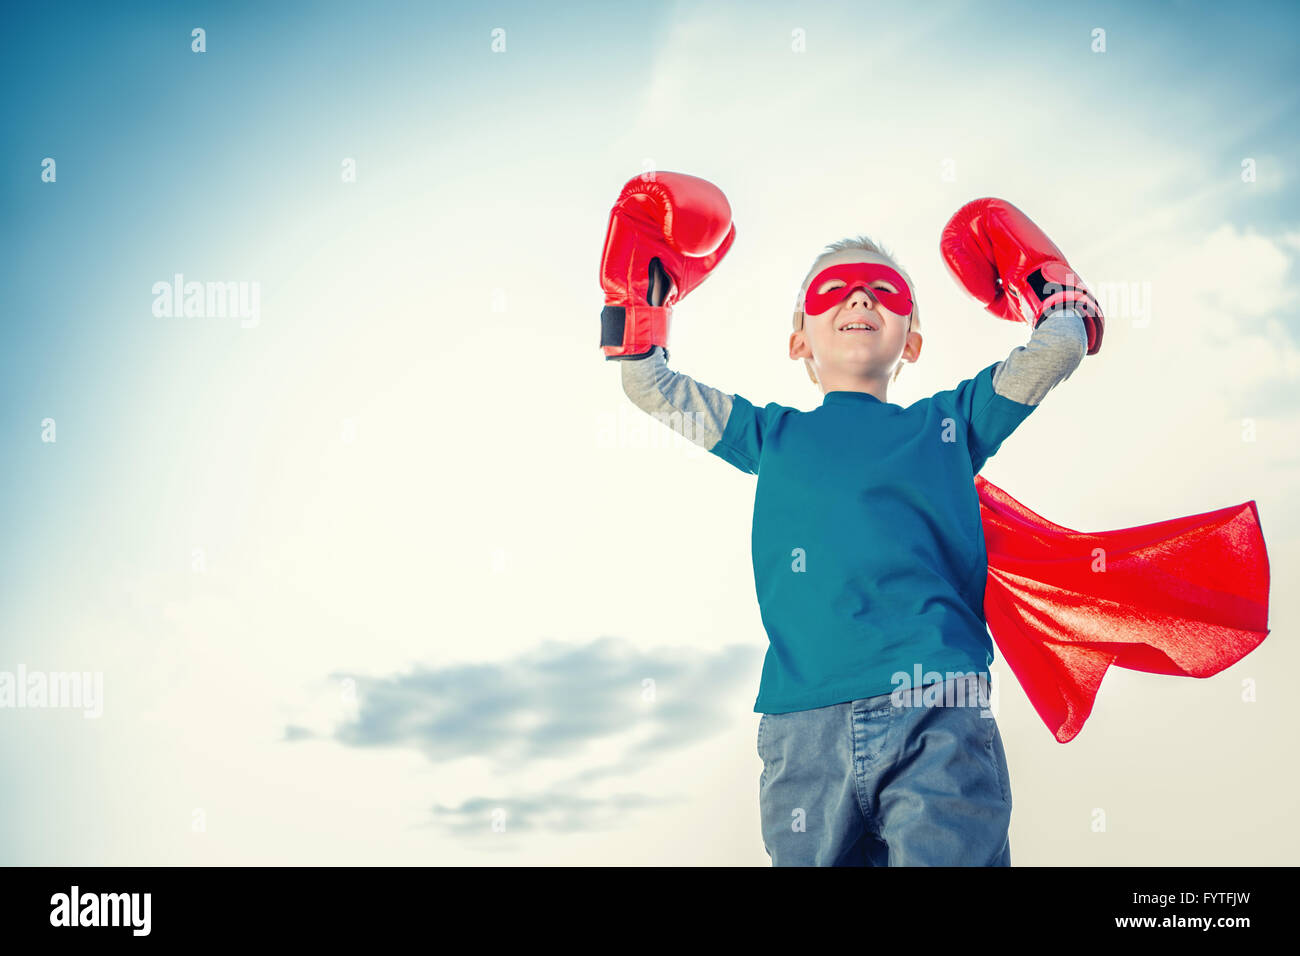 Victory - Stock Image